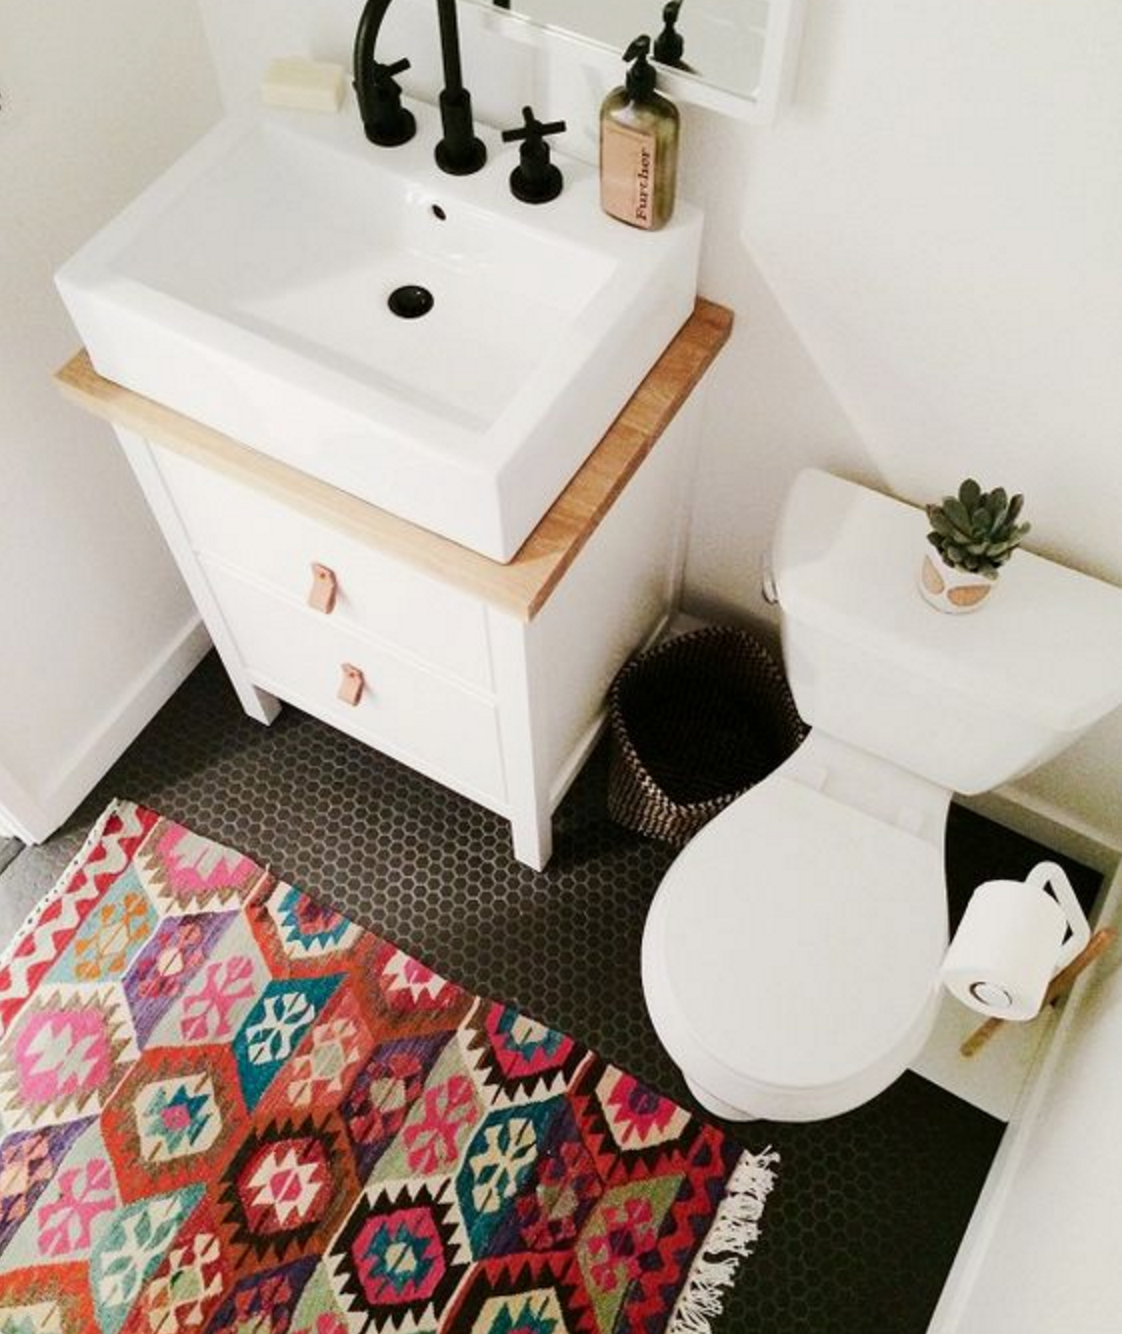 Colour pop for the littlest room add some oomph to your bathroom